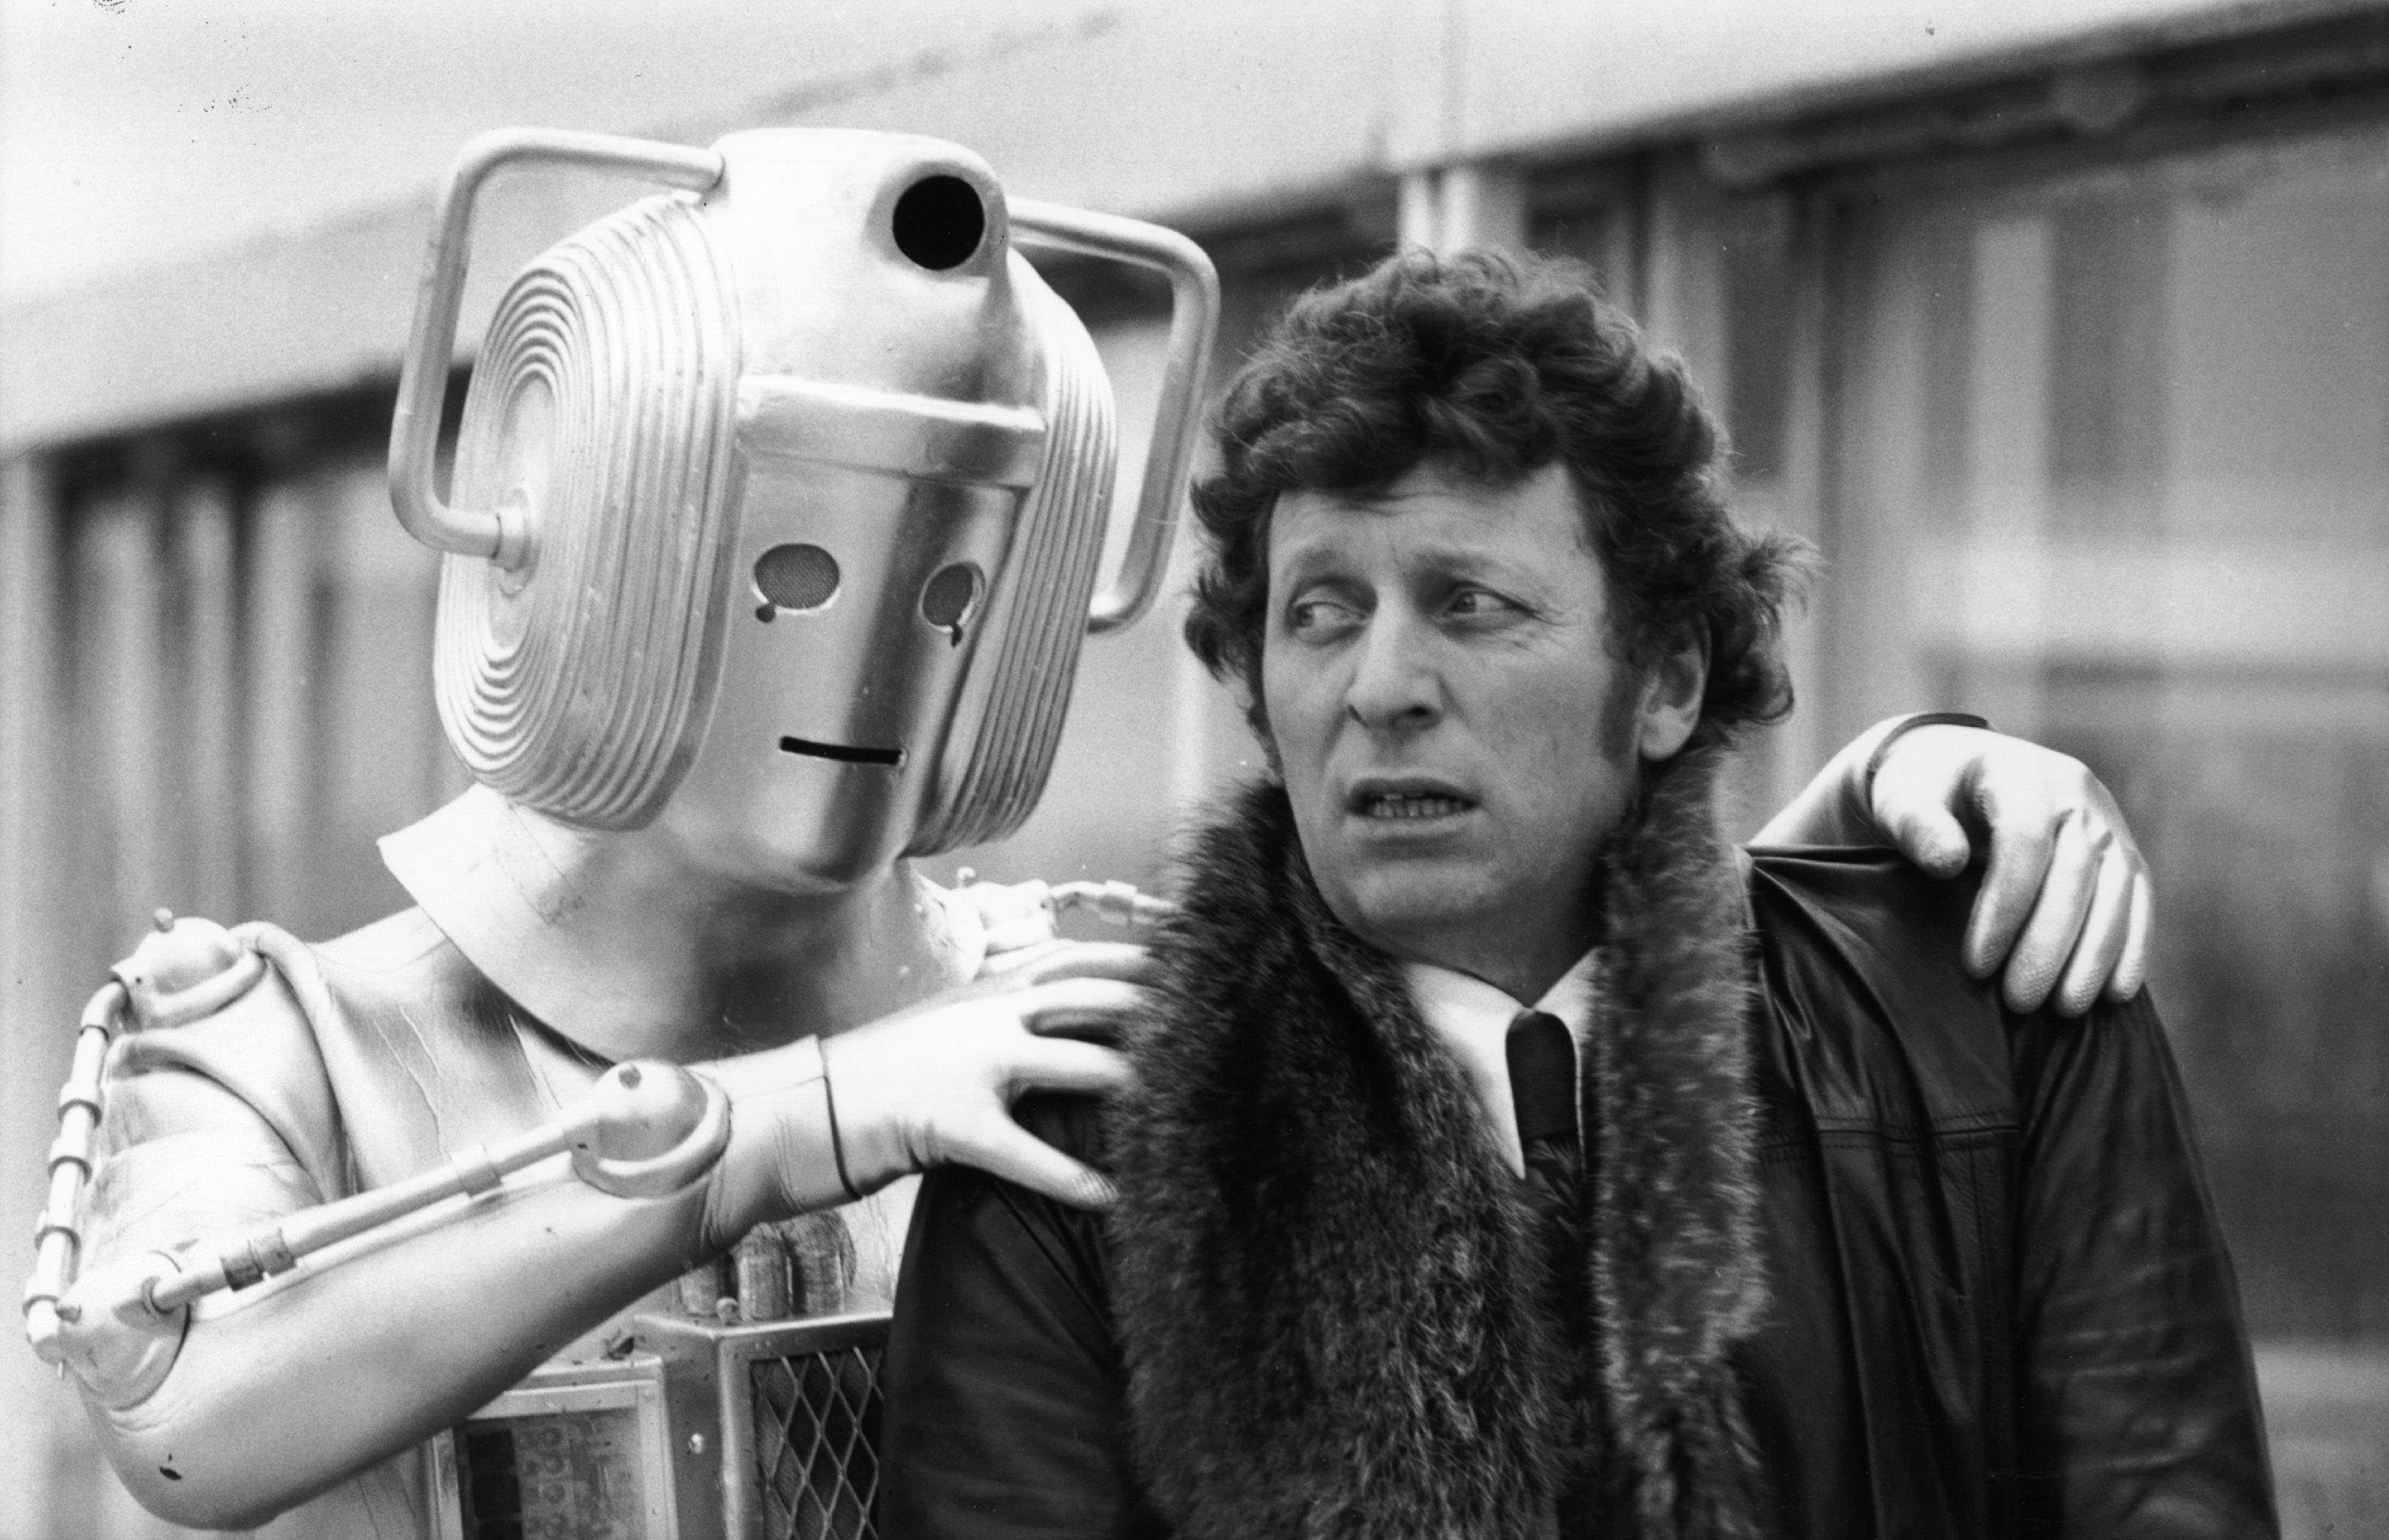 Dr Who (Tom Baker) meets one of the monsters from his new series. (Photo by Frank Barratt/Getty Images)